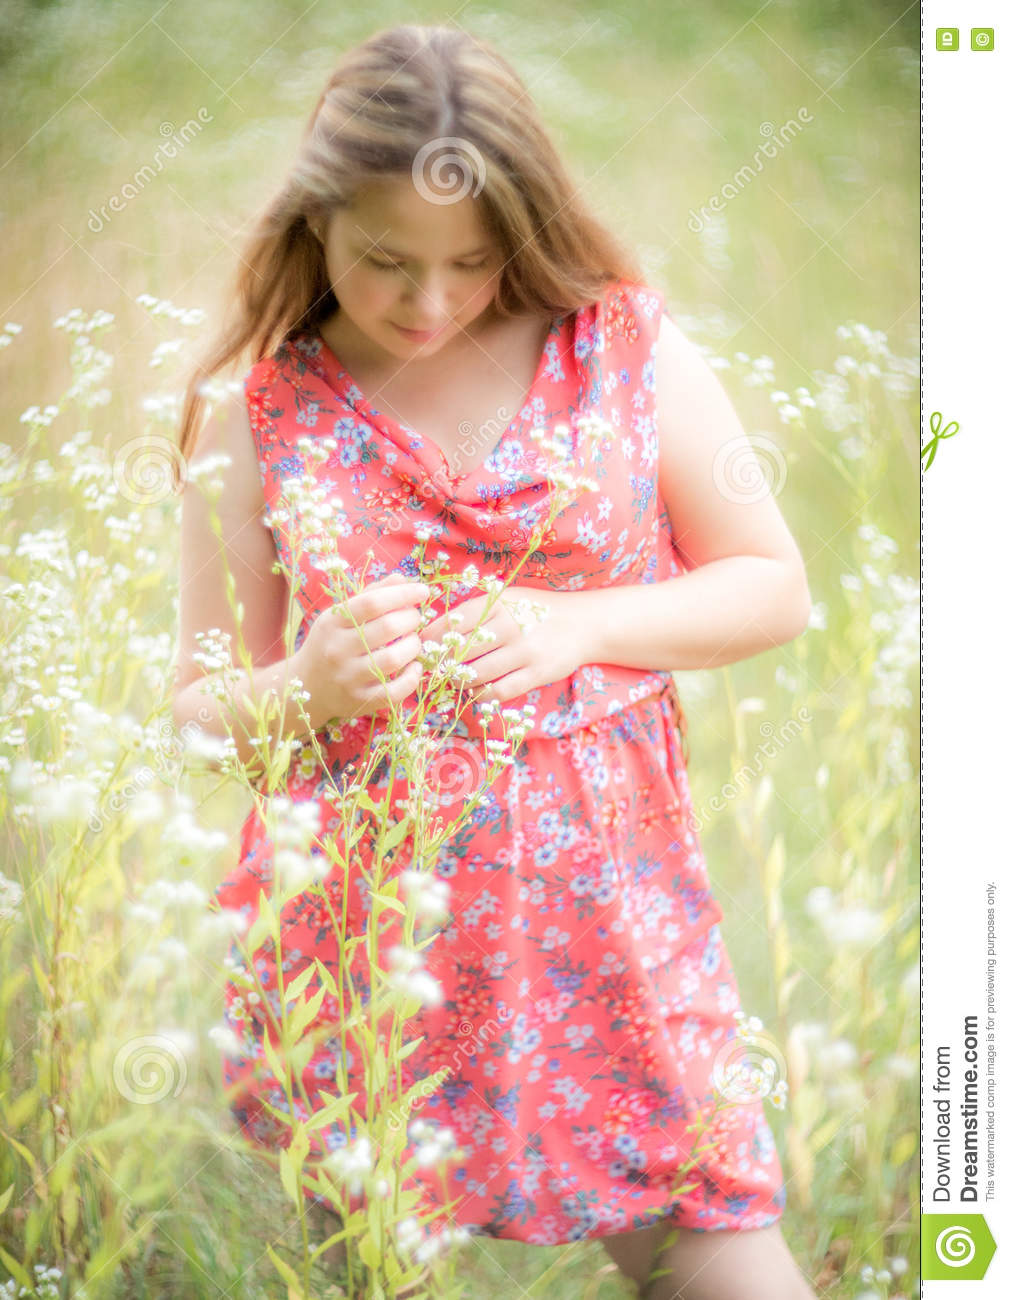 cbf68cbc452 Young Girl Shy Look Down Stock Images - Download 79 Royalty Free Photos